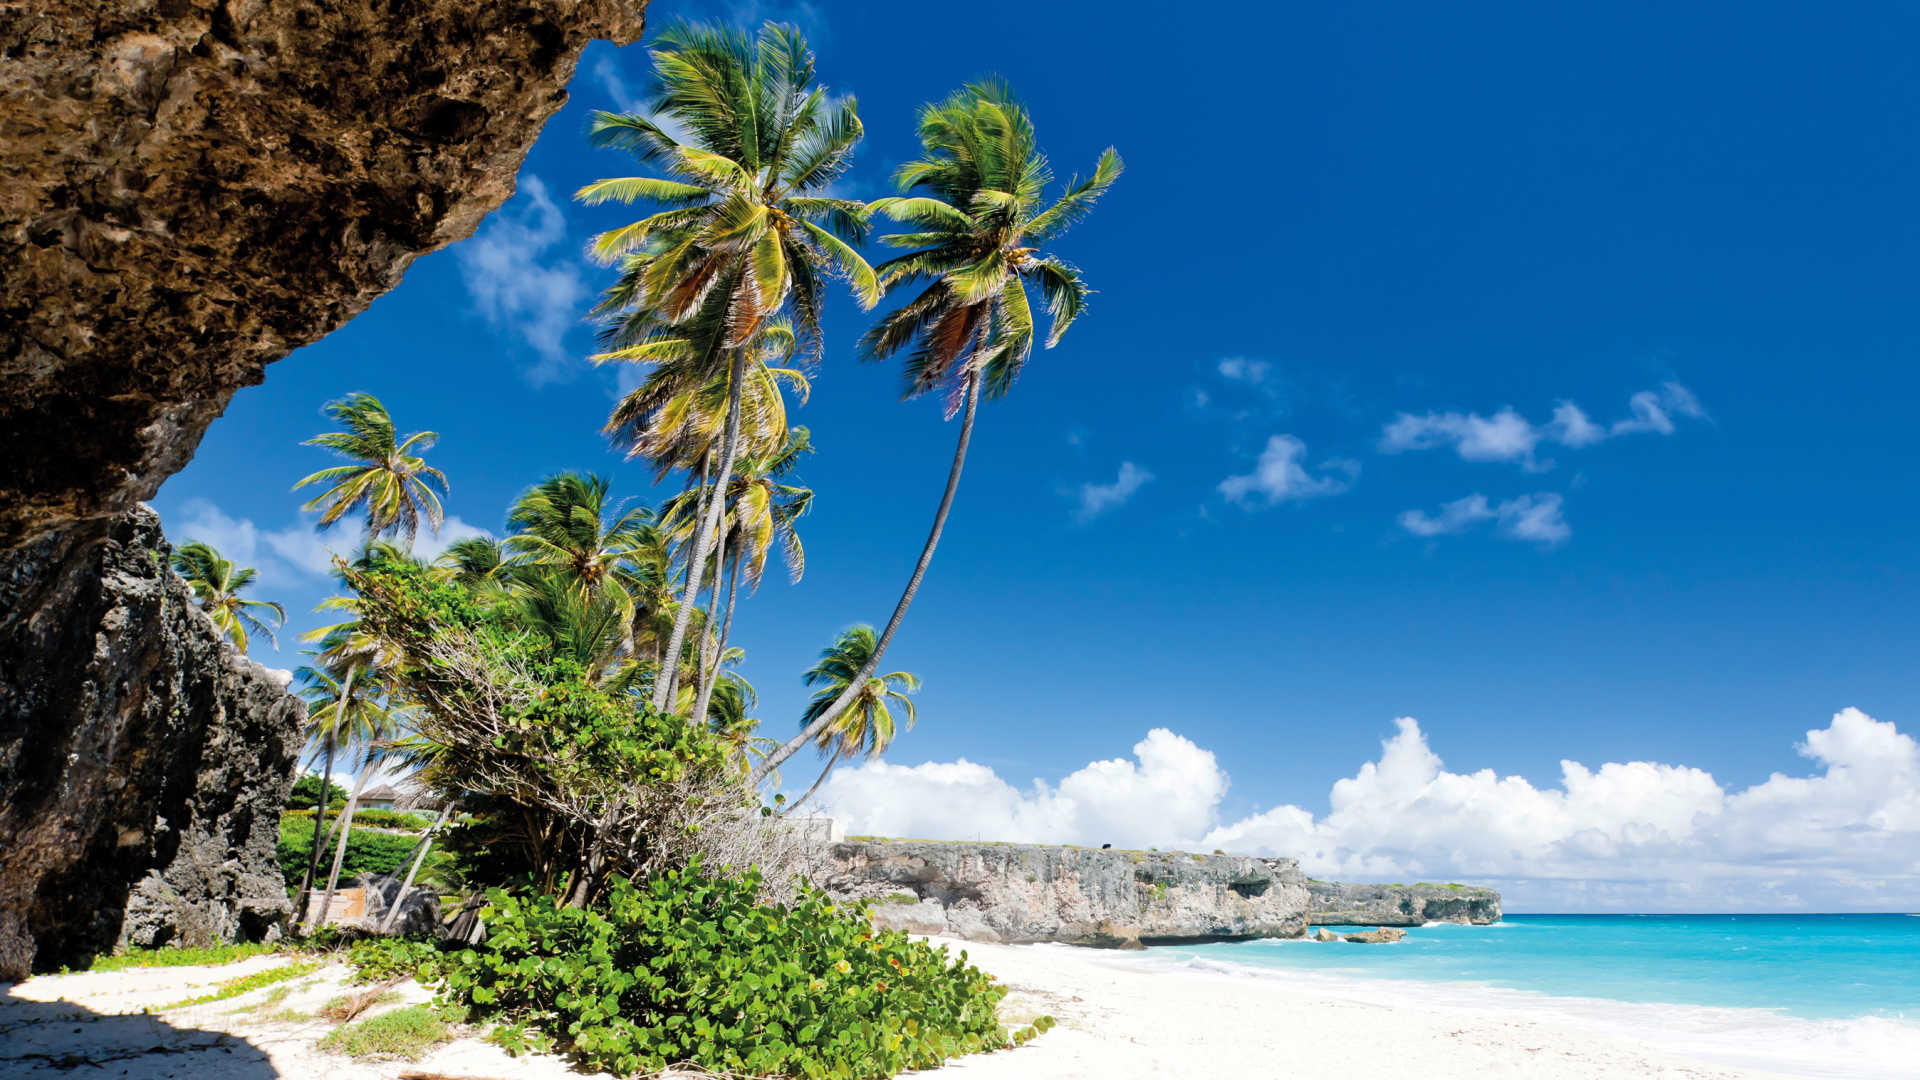 Incentive Travel in The Caribbean: The Lay of the Land